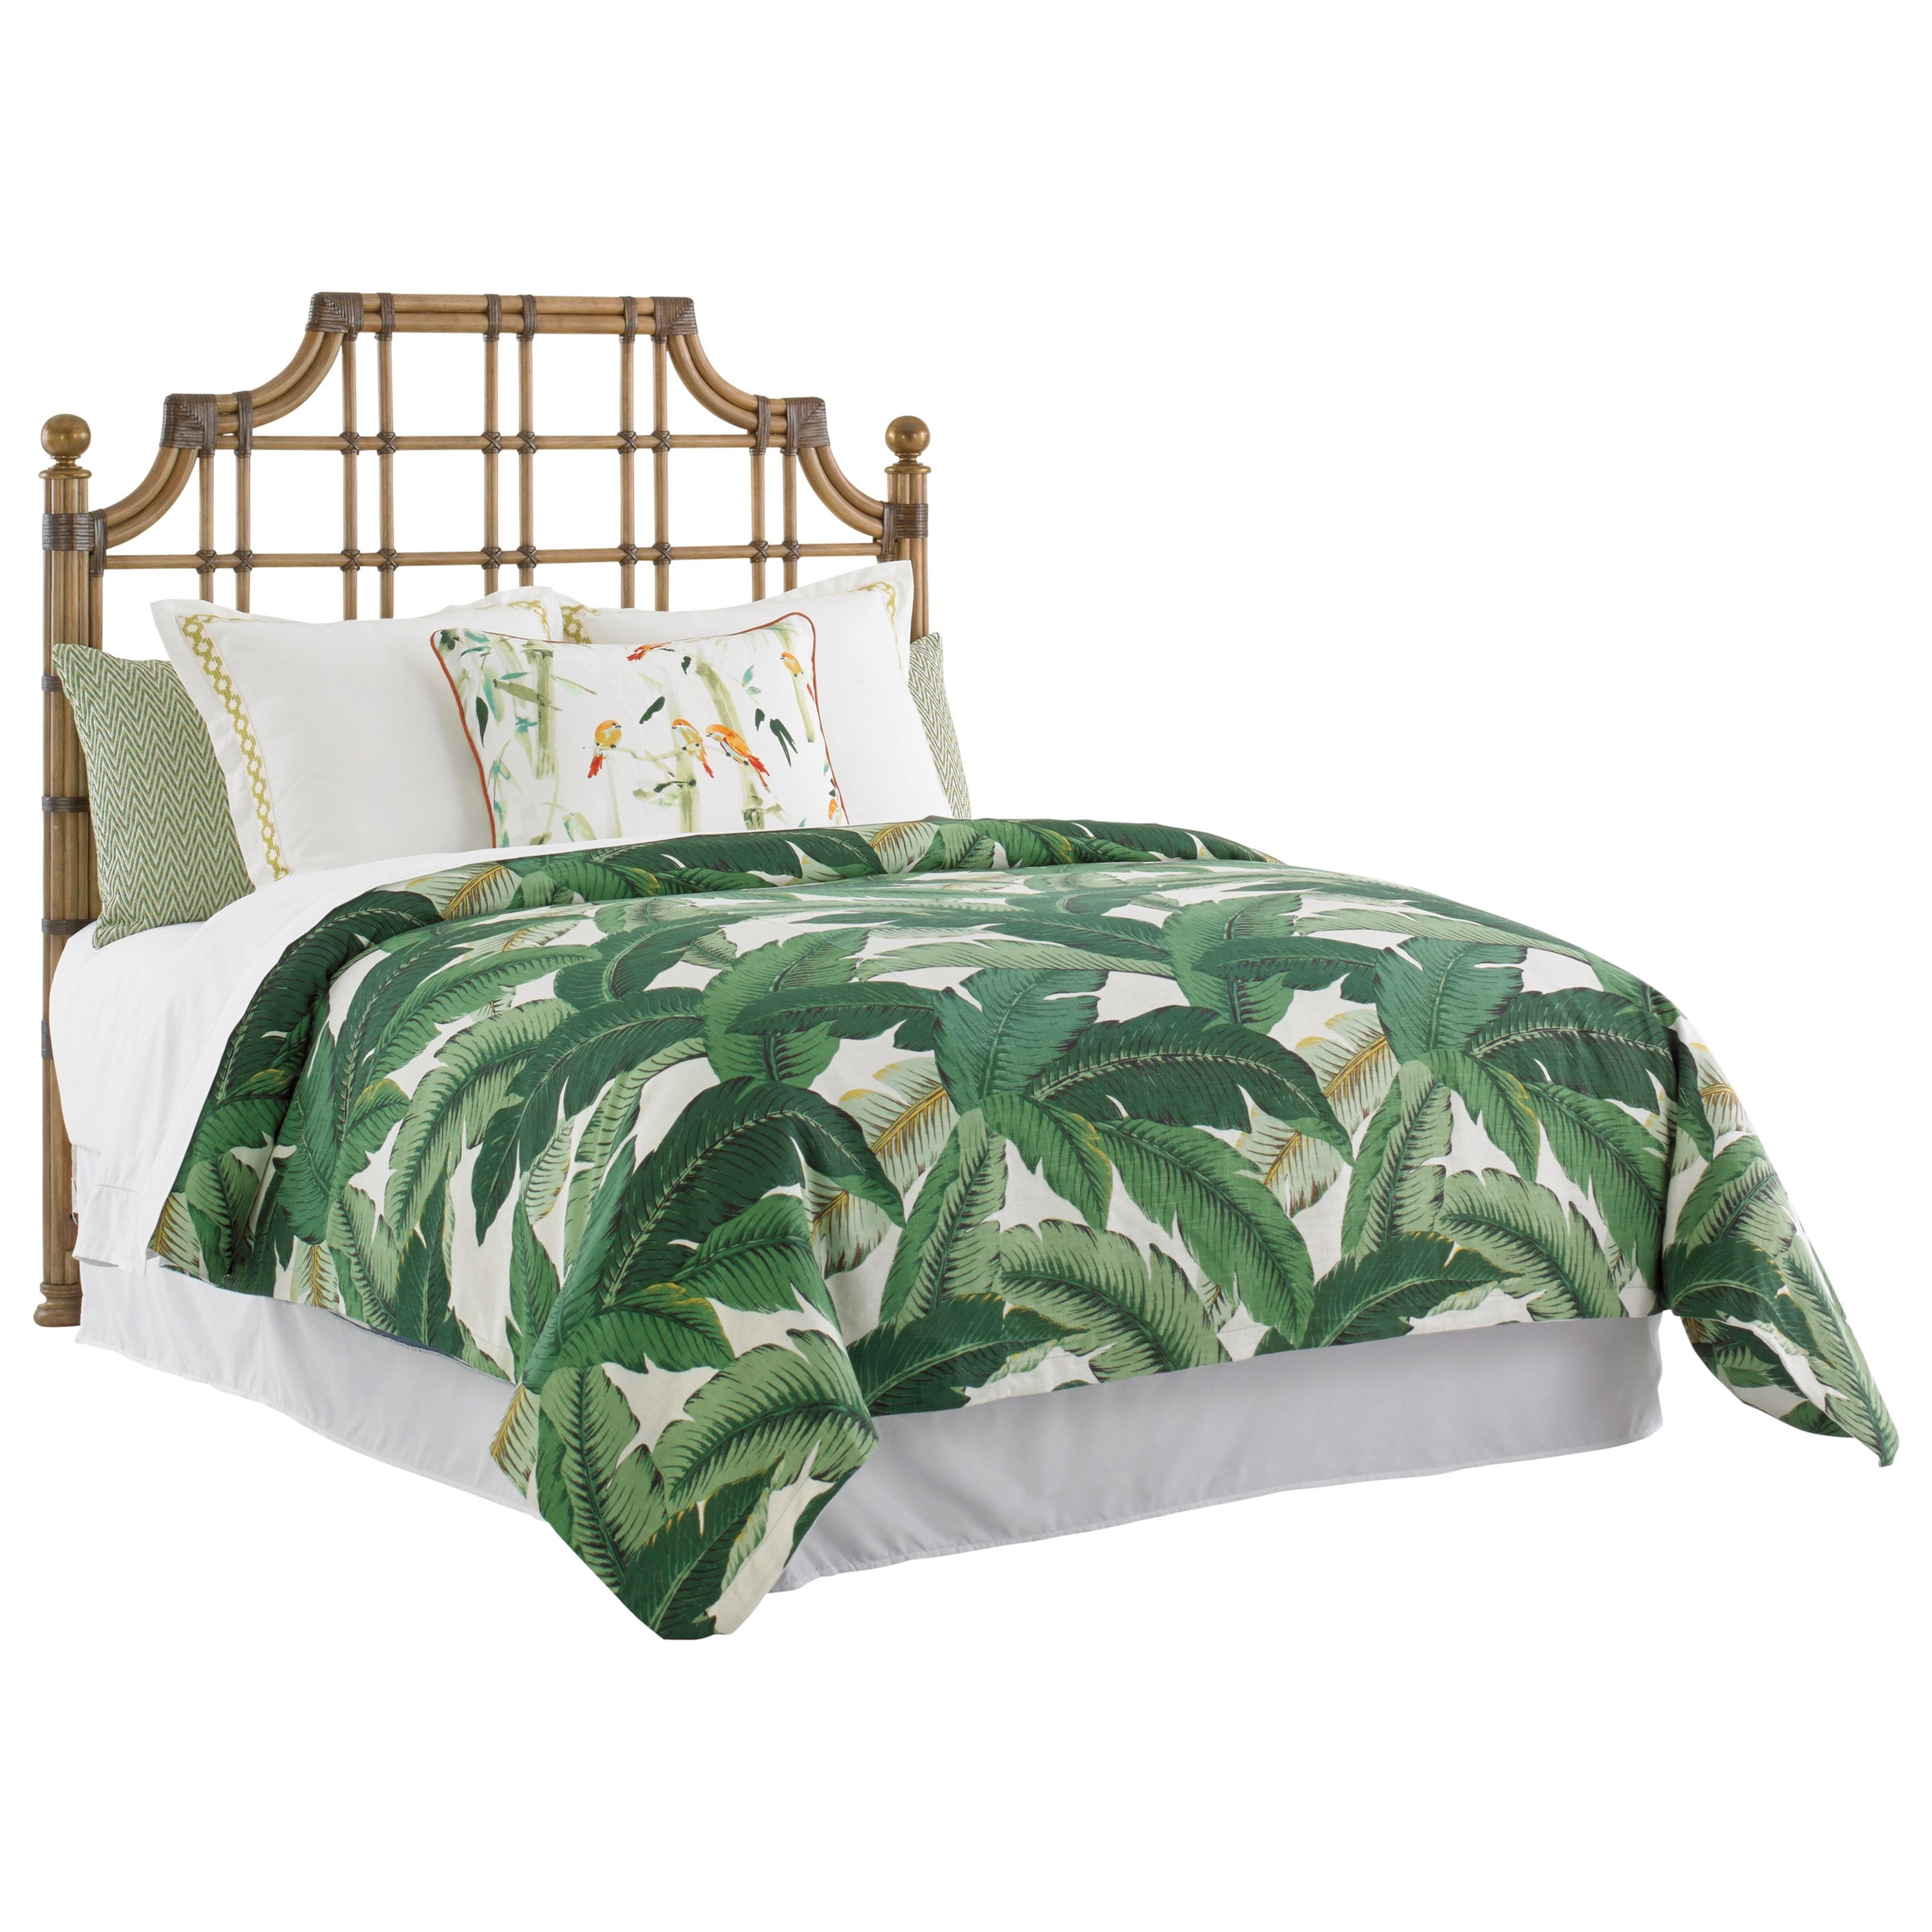 Tommy Bahama Home Twin Palms St. Kitts King Sized Headboard - Item Number: 558-144HB